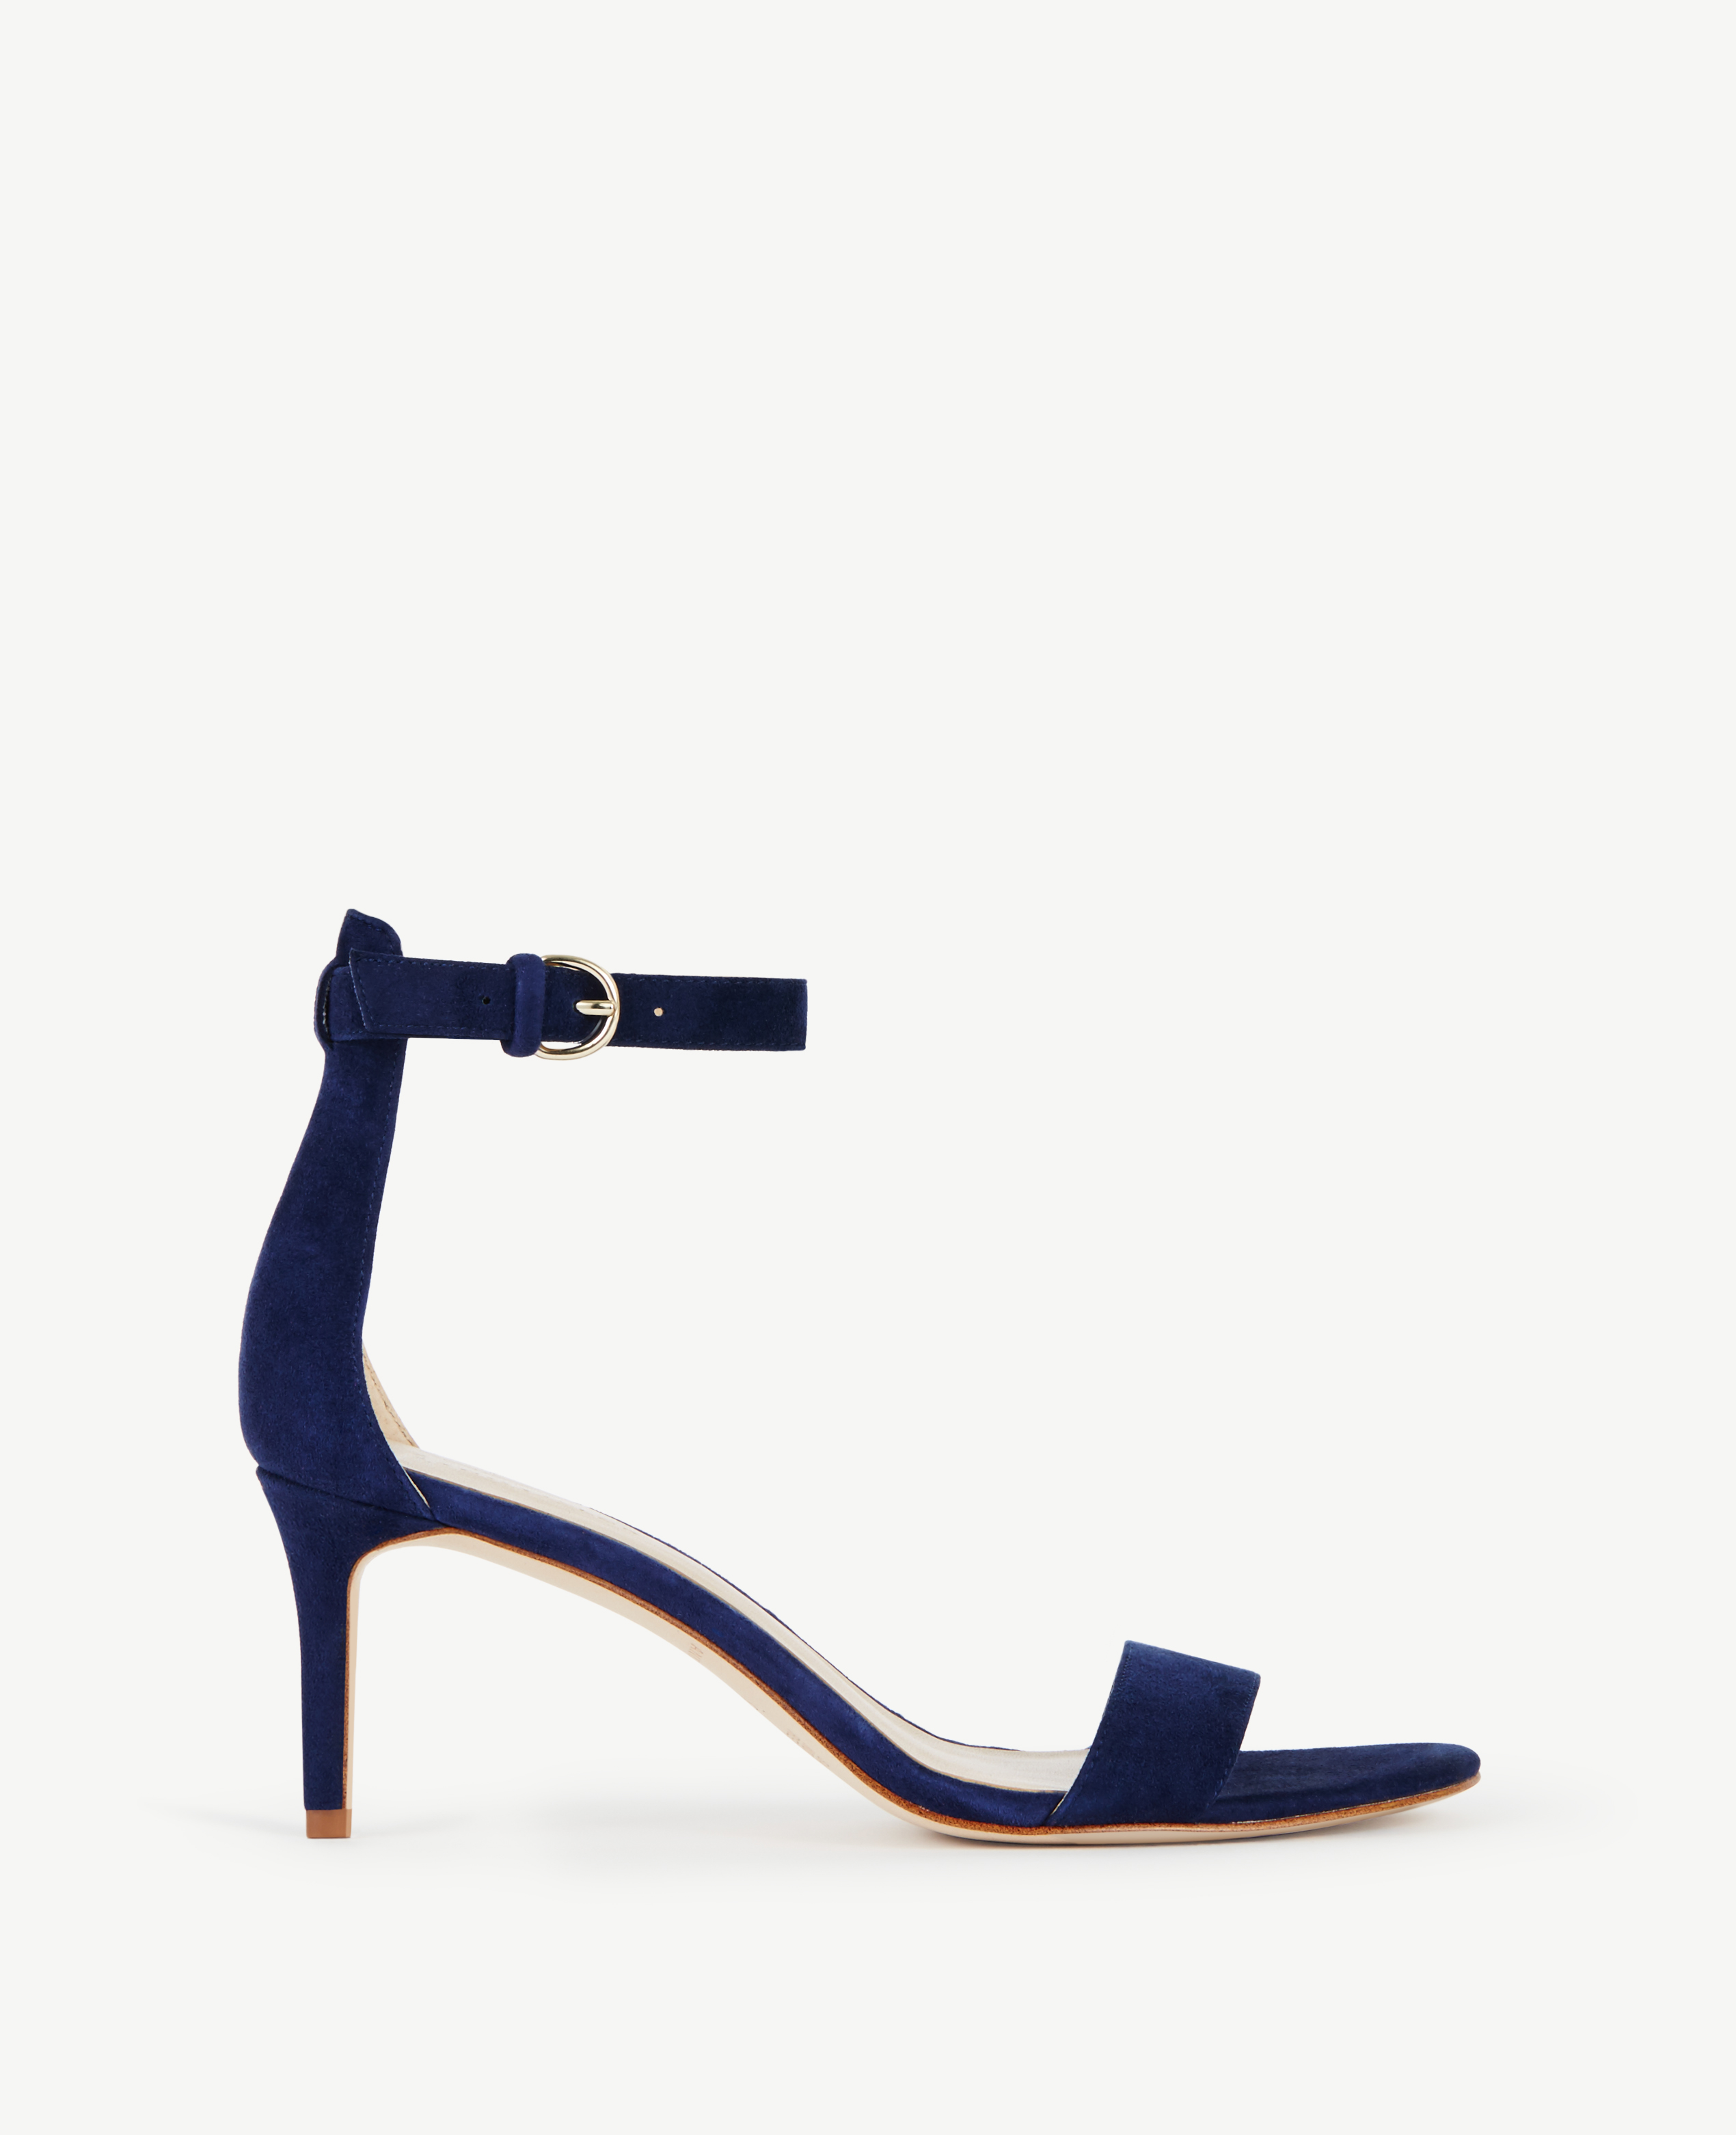 d5f25d44f52 Lyst - Ann Taylor Kaelyn Suede Strappy Sandals in Blue